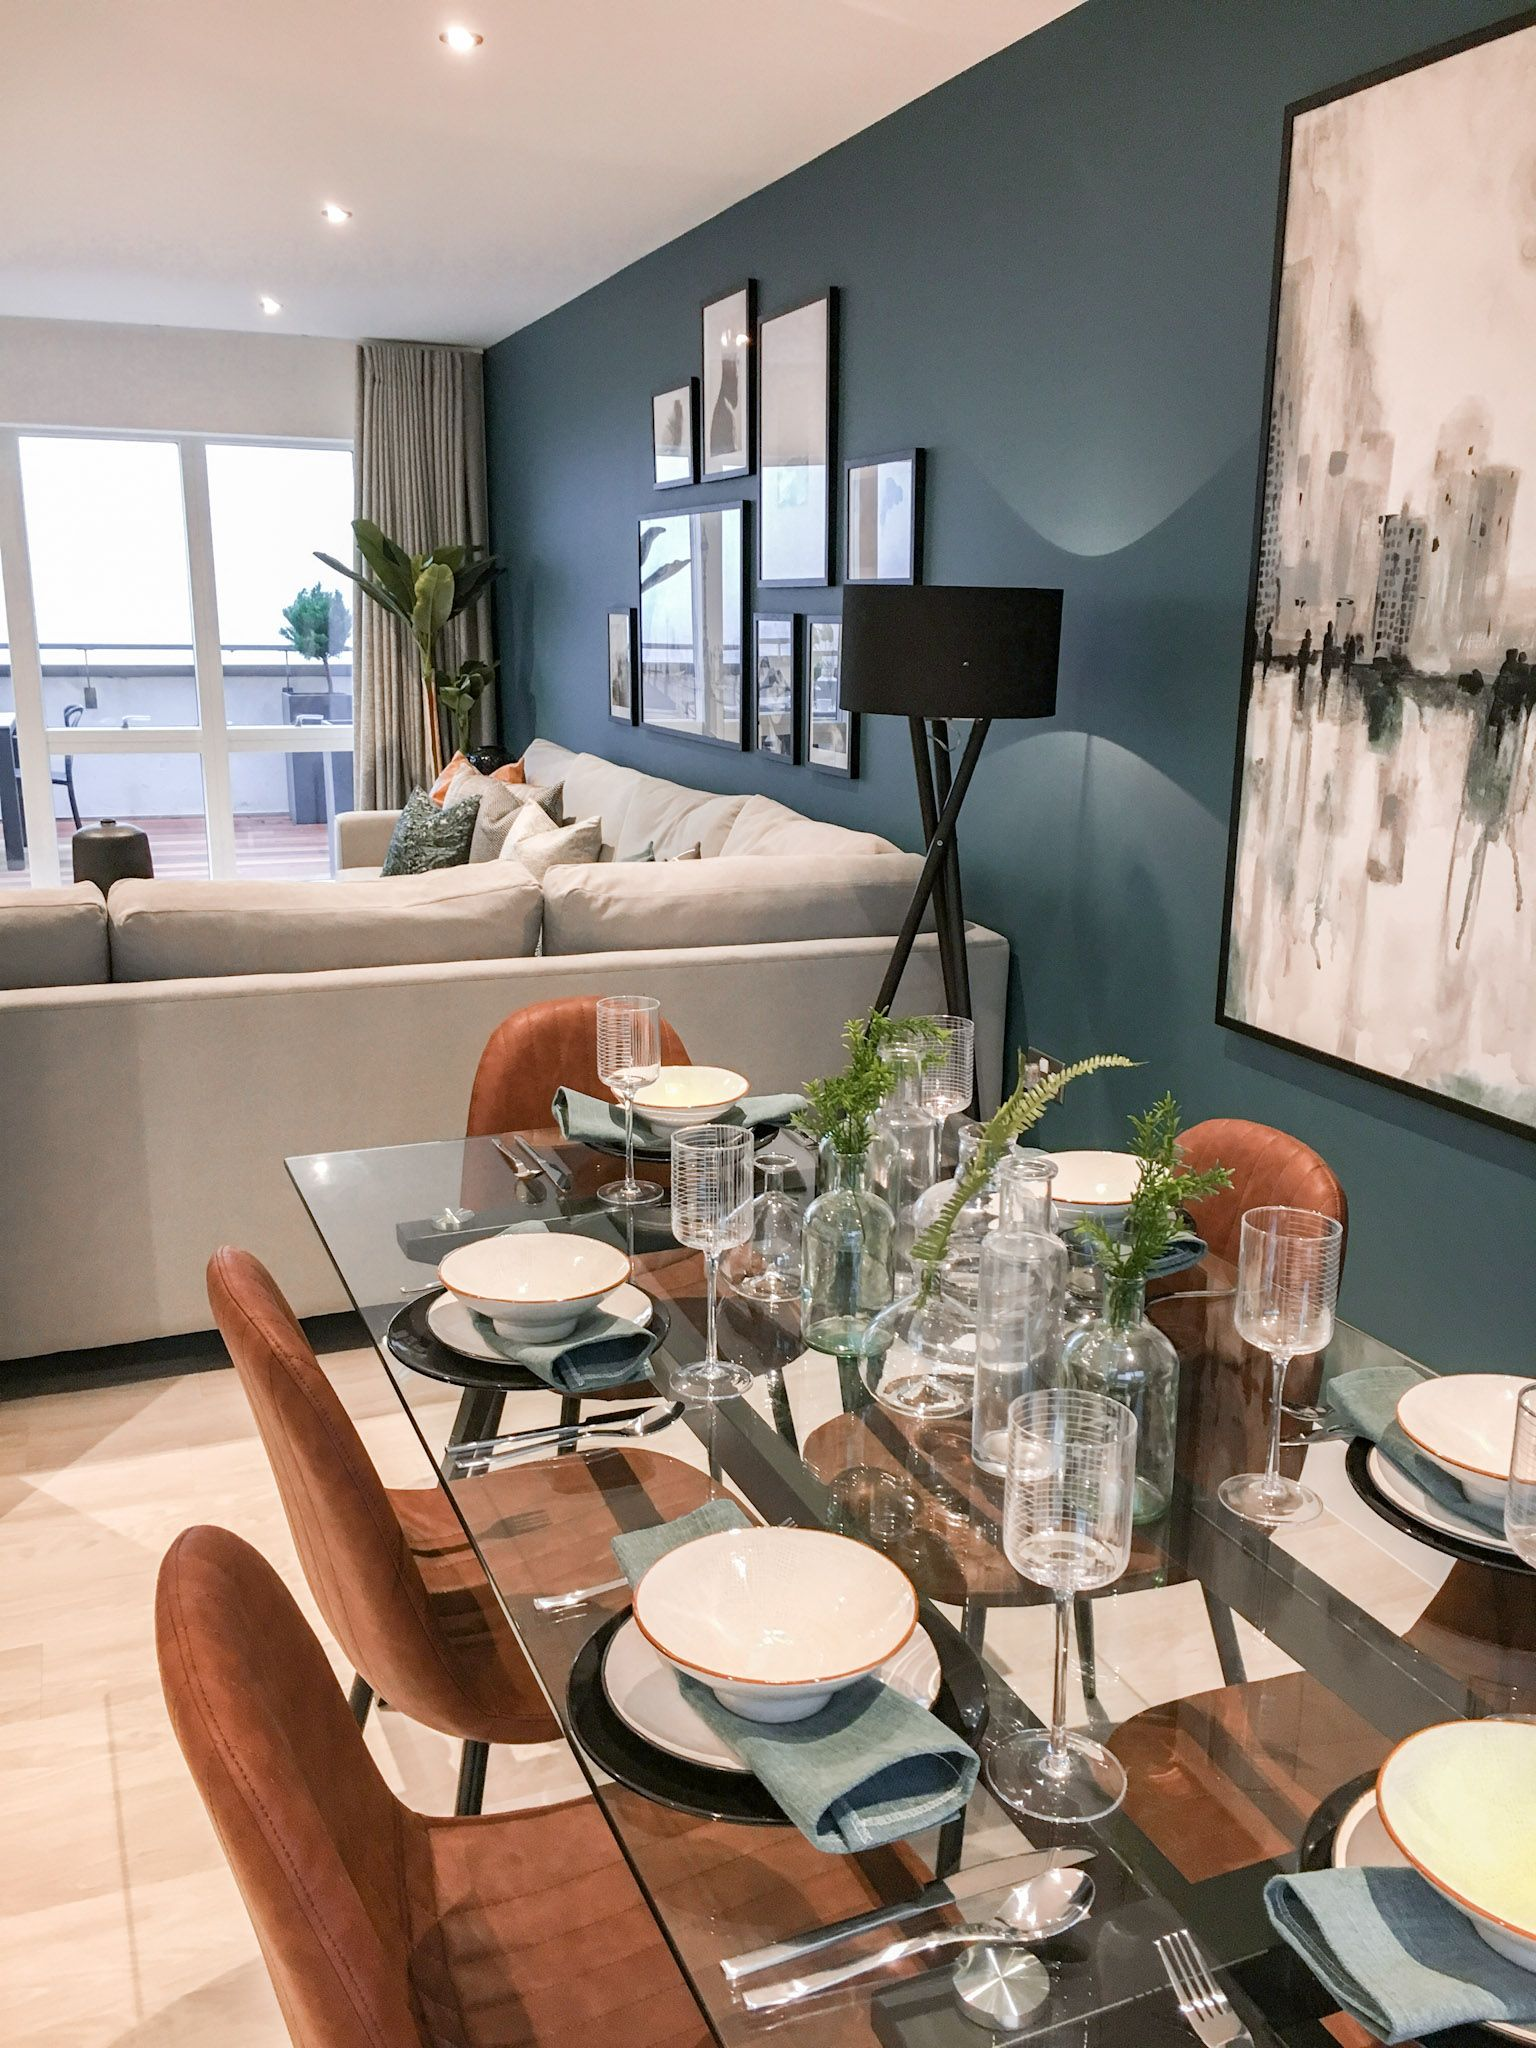 Contemporary New Build Open Plan Living Dining Area With Dark Blue